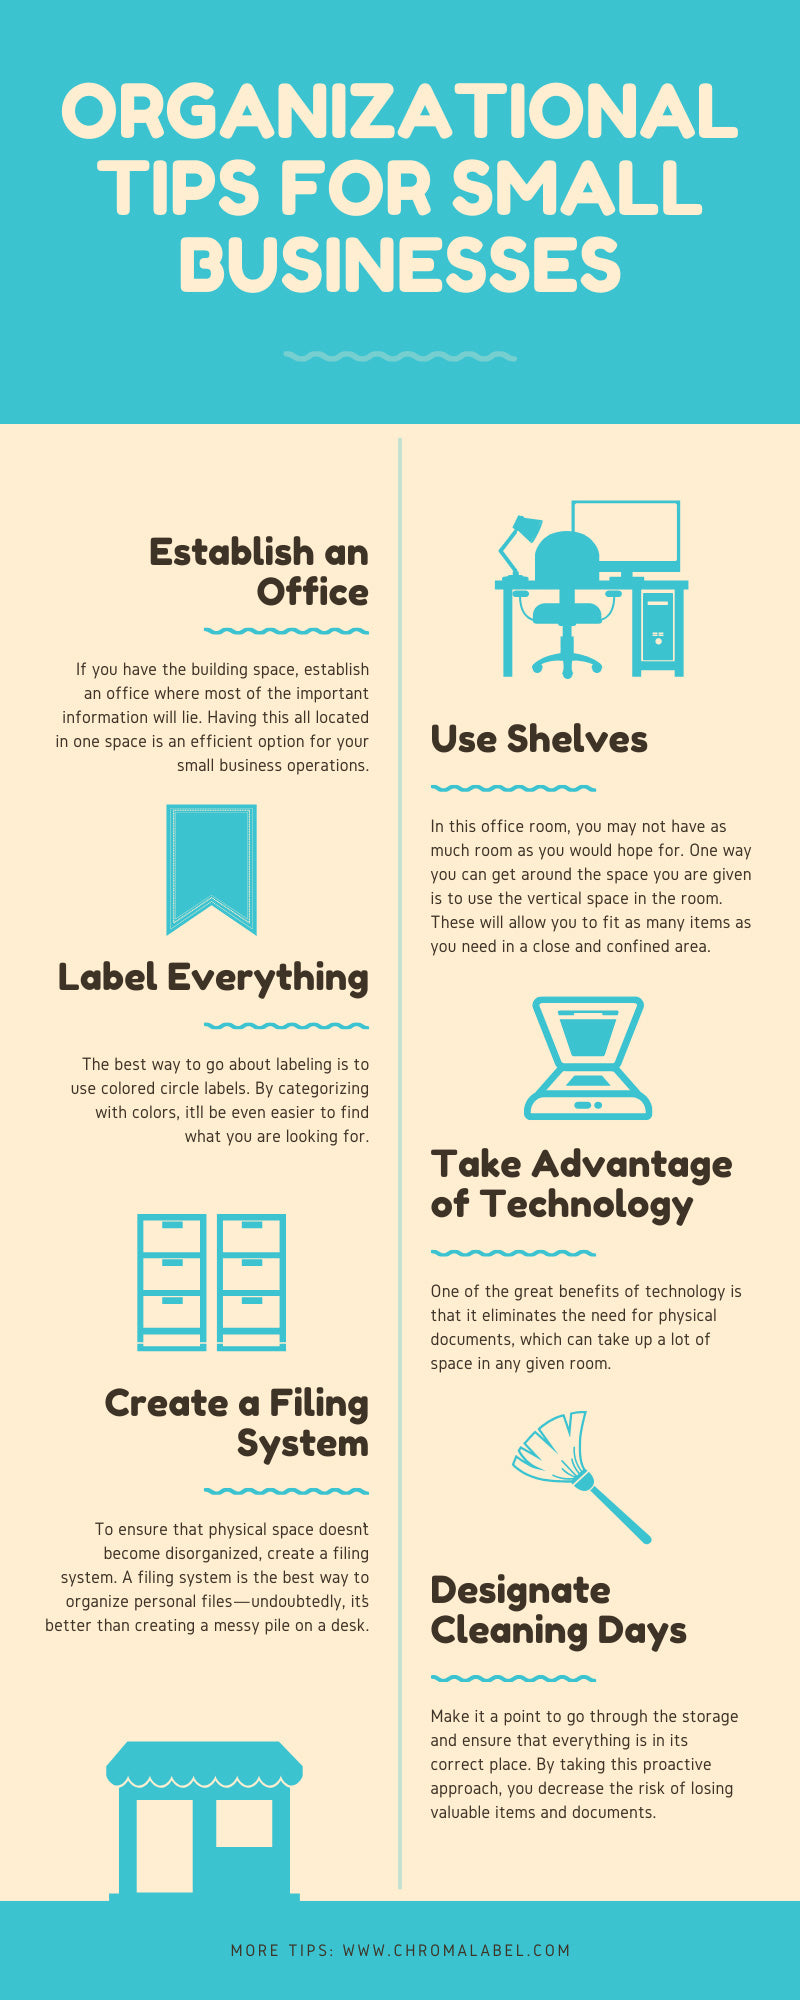 Organizational Tips for Small Businesses